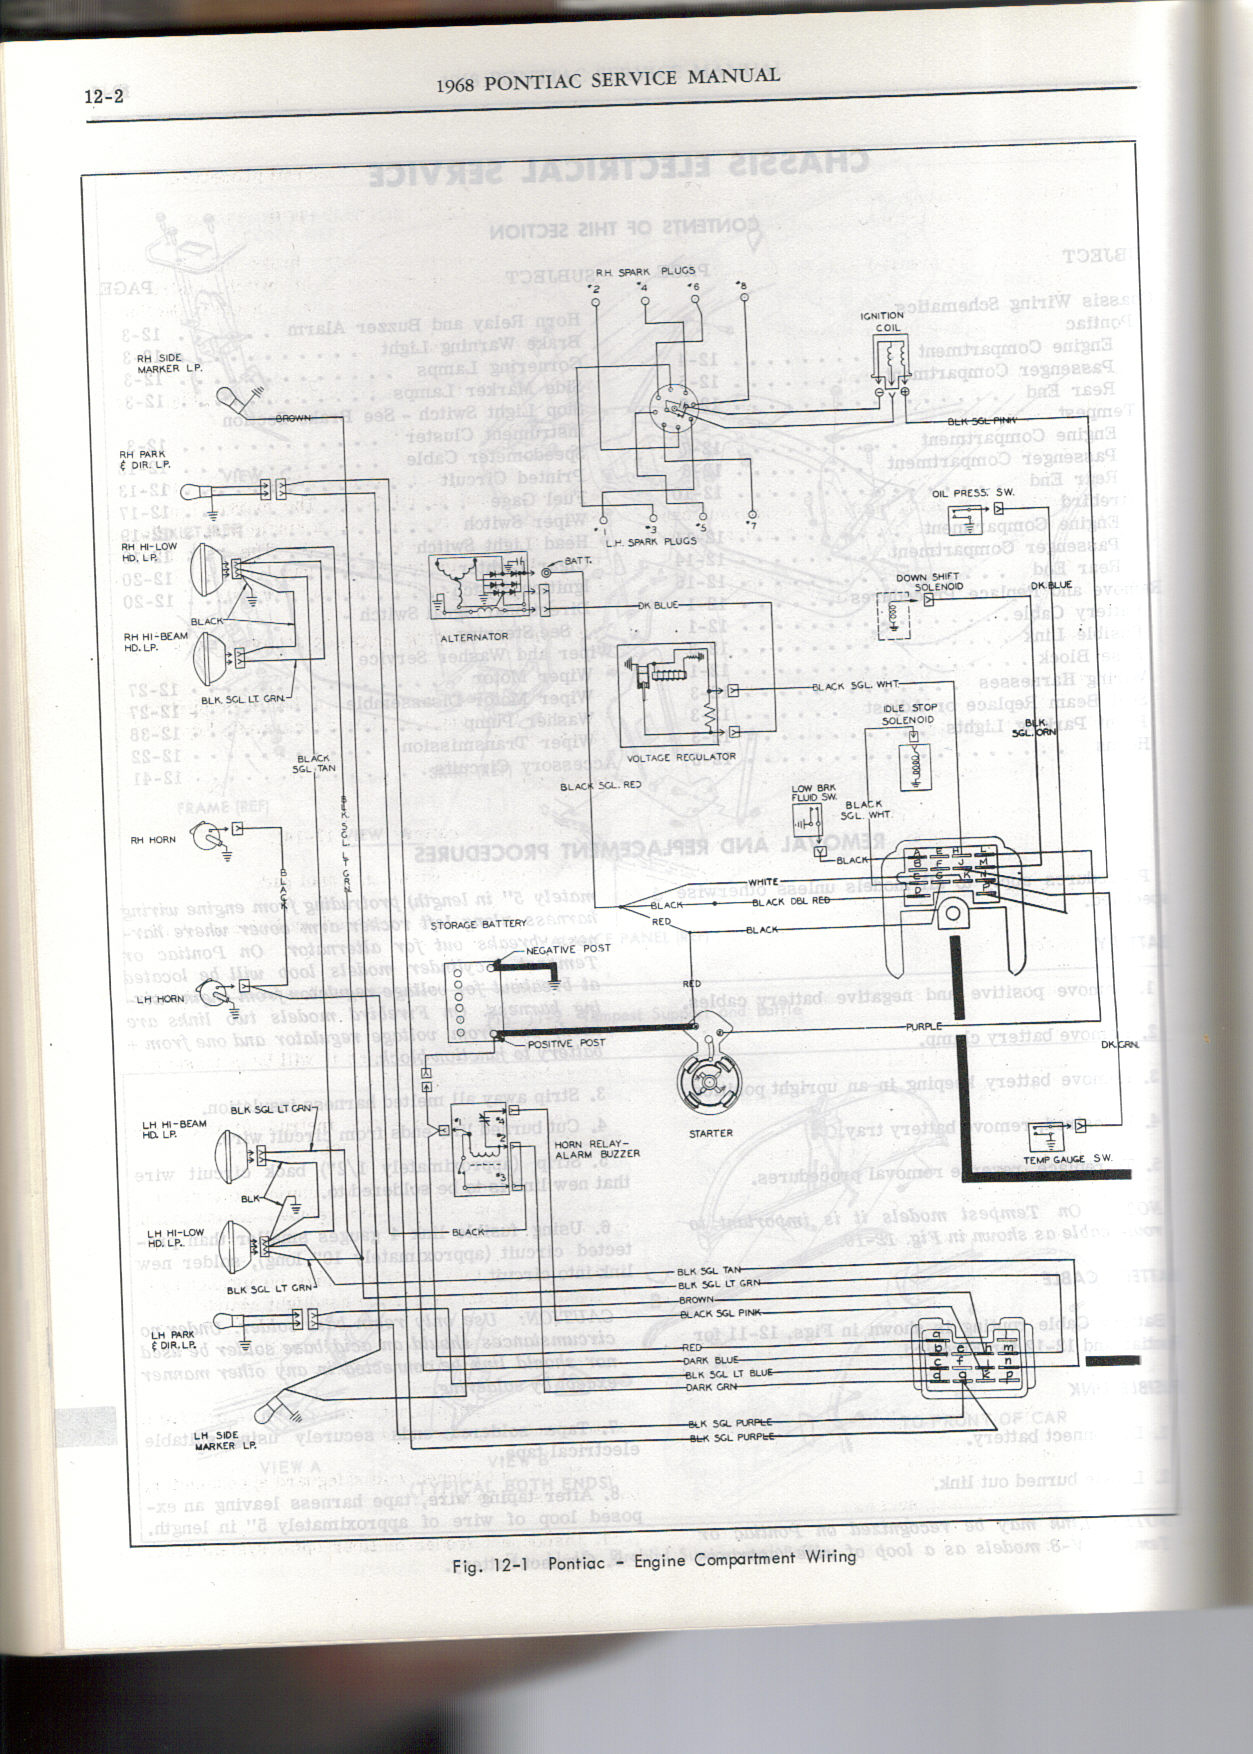 alternator wiring diagram pontiac alternator image pontiac 400 distributor wire diagram ih h wiring diagram harley on alternator wiring diagram pontiac